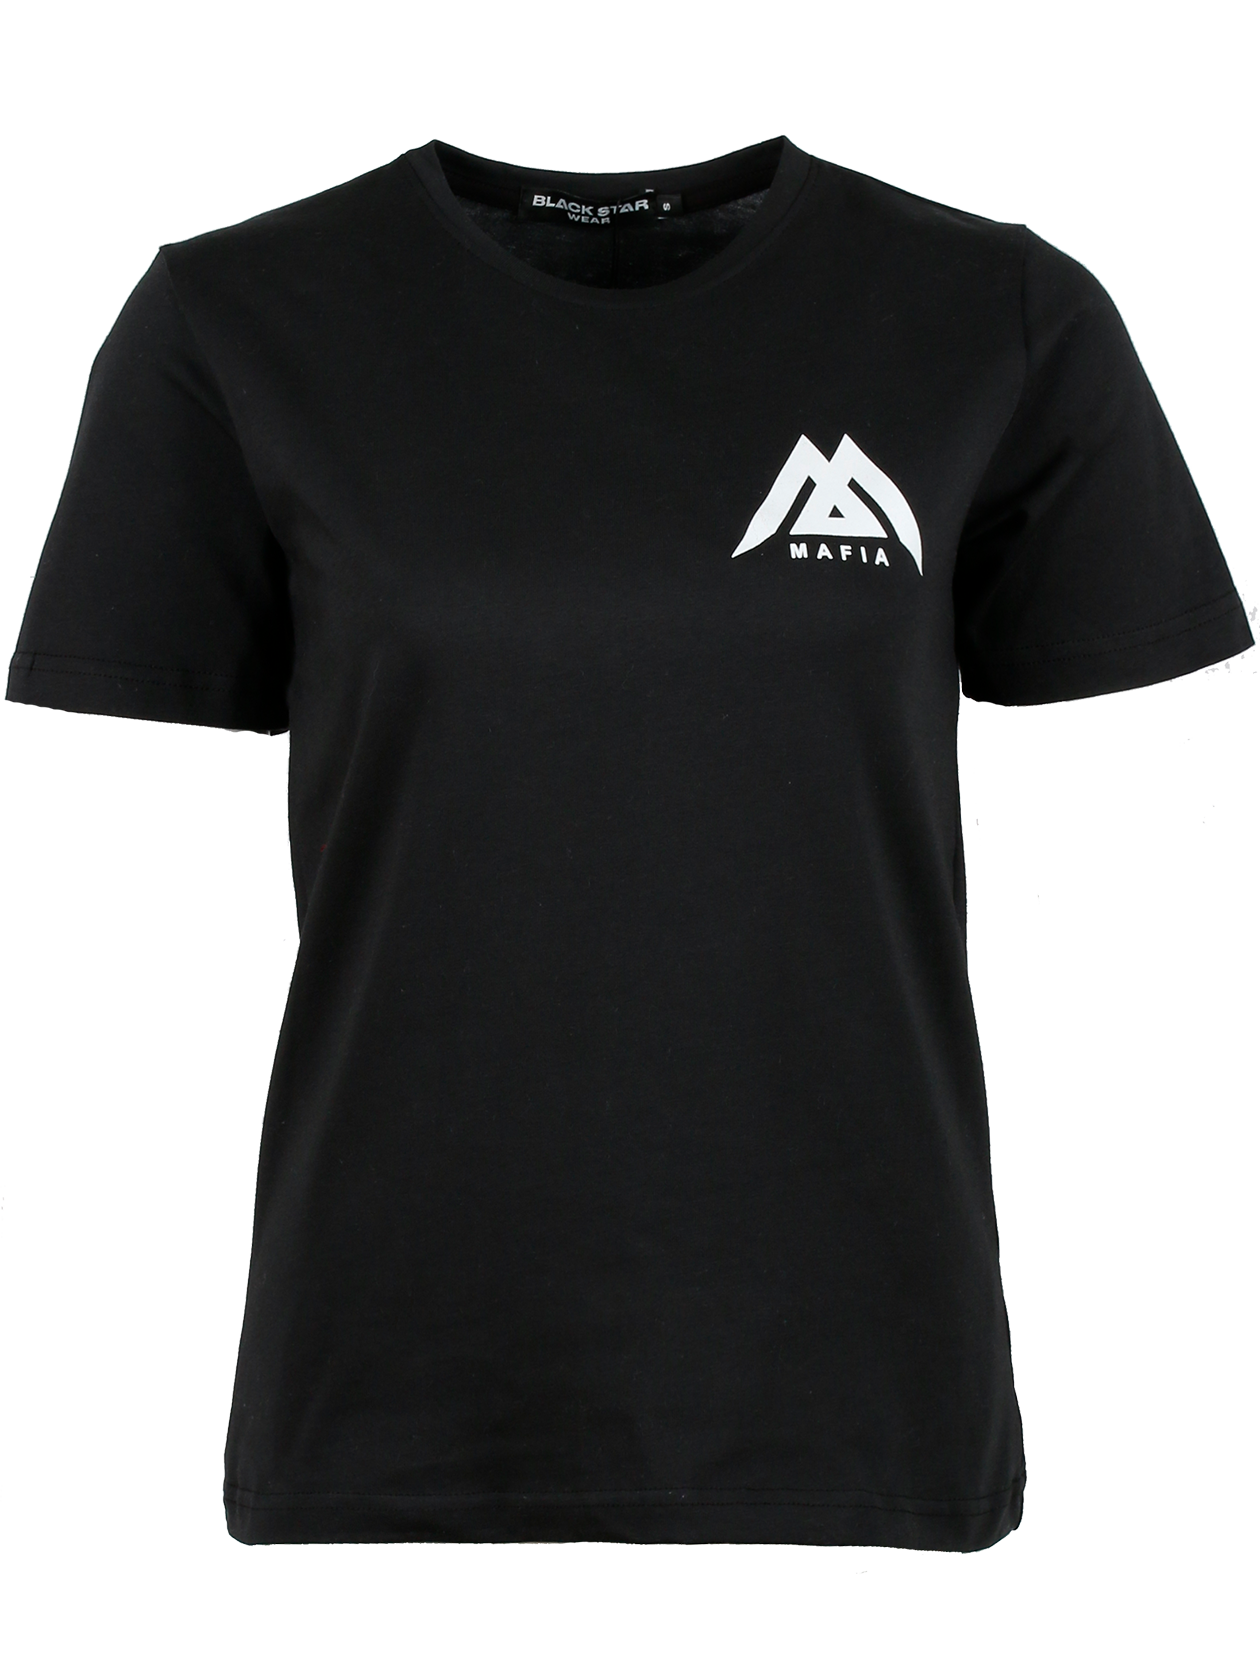 Womens t-shirt Black Star MafiaWomens Black Star Mafia t-shirt by Black Star Wear. Straight fit, classic sleeve, round neck. High quality cotton material. Black Star Mafia lettering on the back and Black Star Mafia logo on the chest. Avaliable in black.<br><br>size: S<br>color: Black<br>gender: female